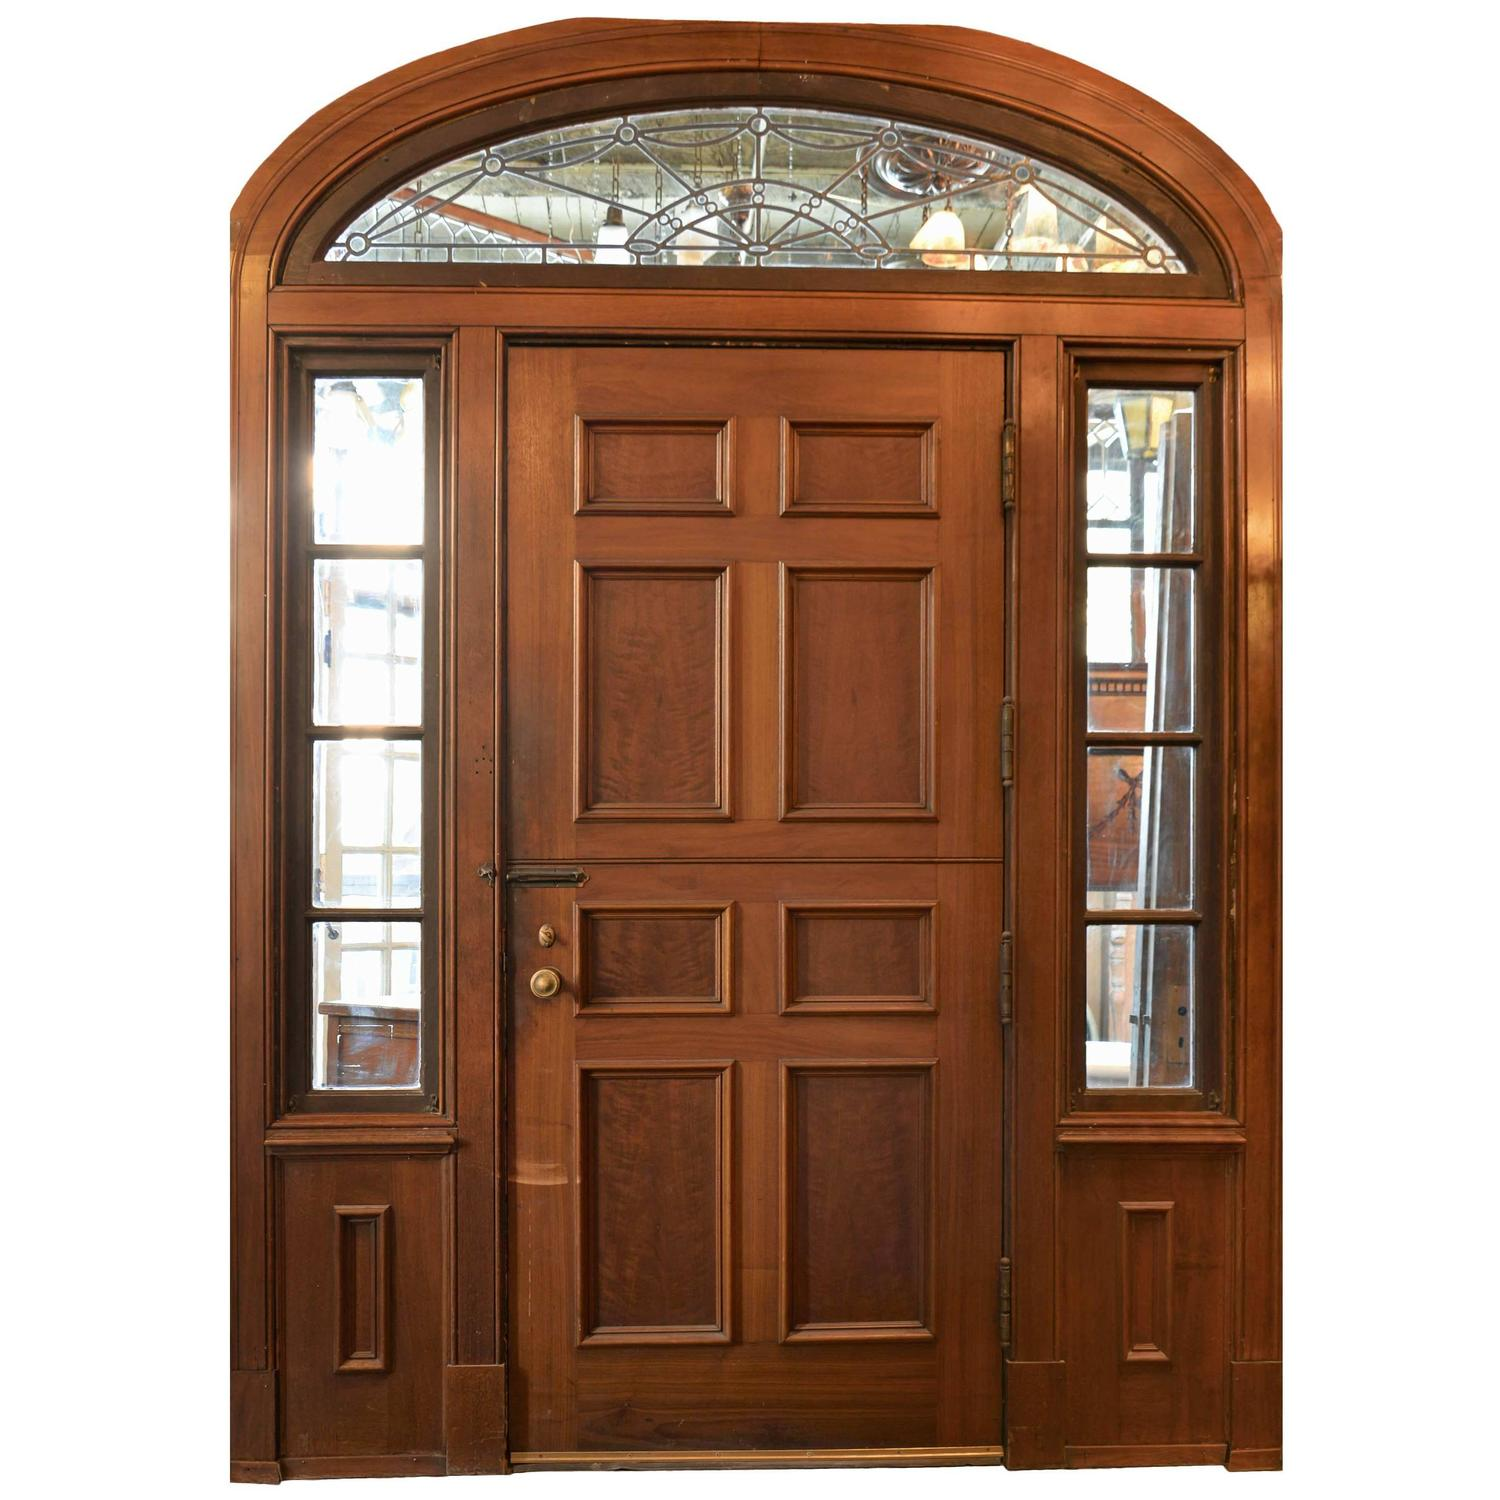 sc 1 st  1stDibs & Complete Walnut Entry Door and Paneled Vestibule circa 1915 at 1stdibs